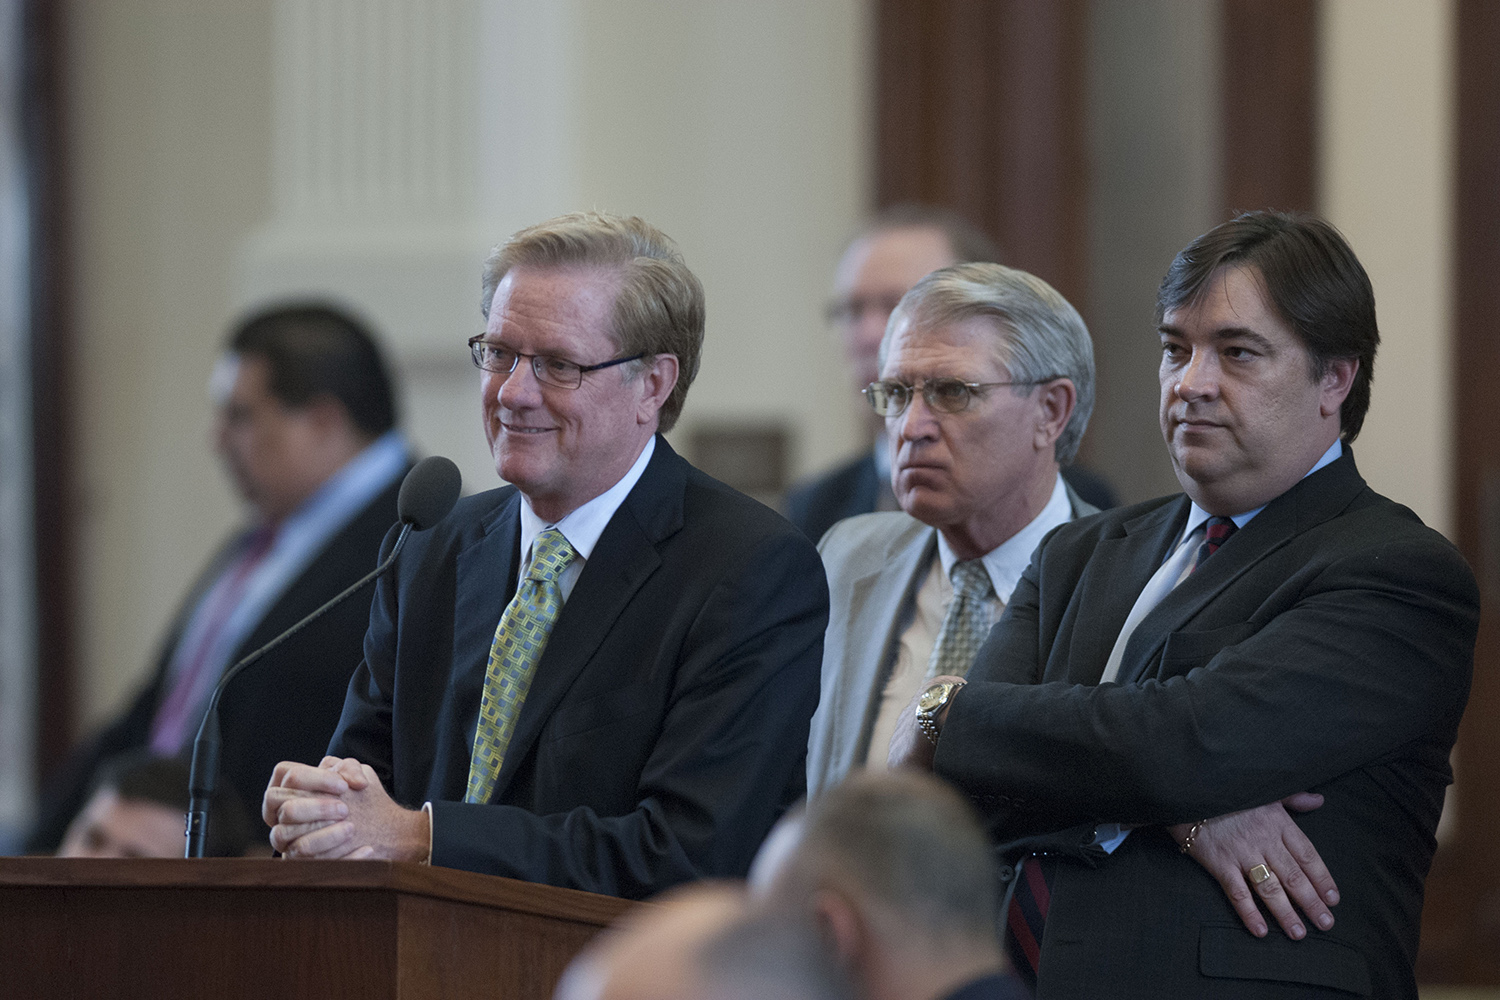 From left to right: State Reps. Jim Pitts, R-Waxahachie, Robert Talton, R-Pasadena, and Jim Dunnam, D-Waco, in the Texas House on May 26, 2007.